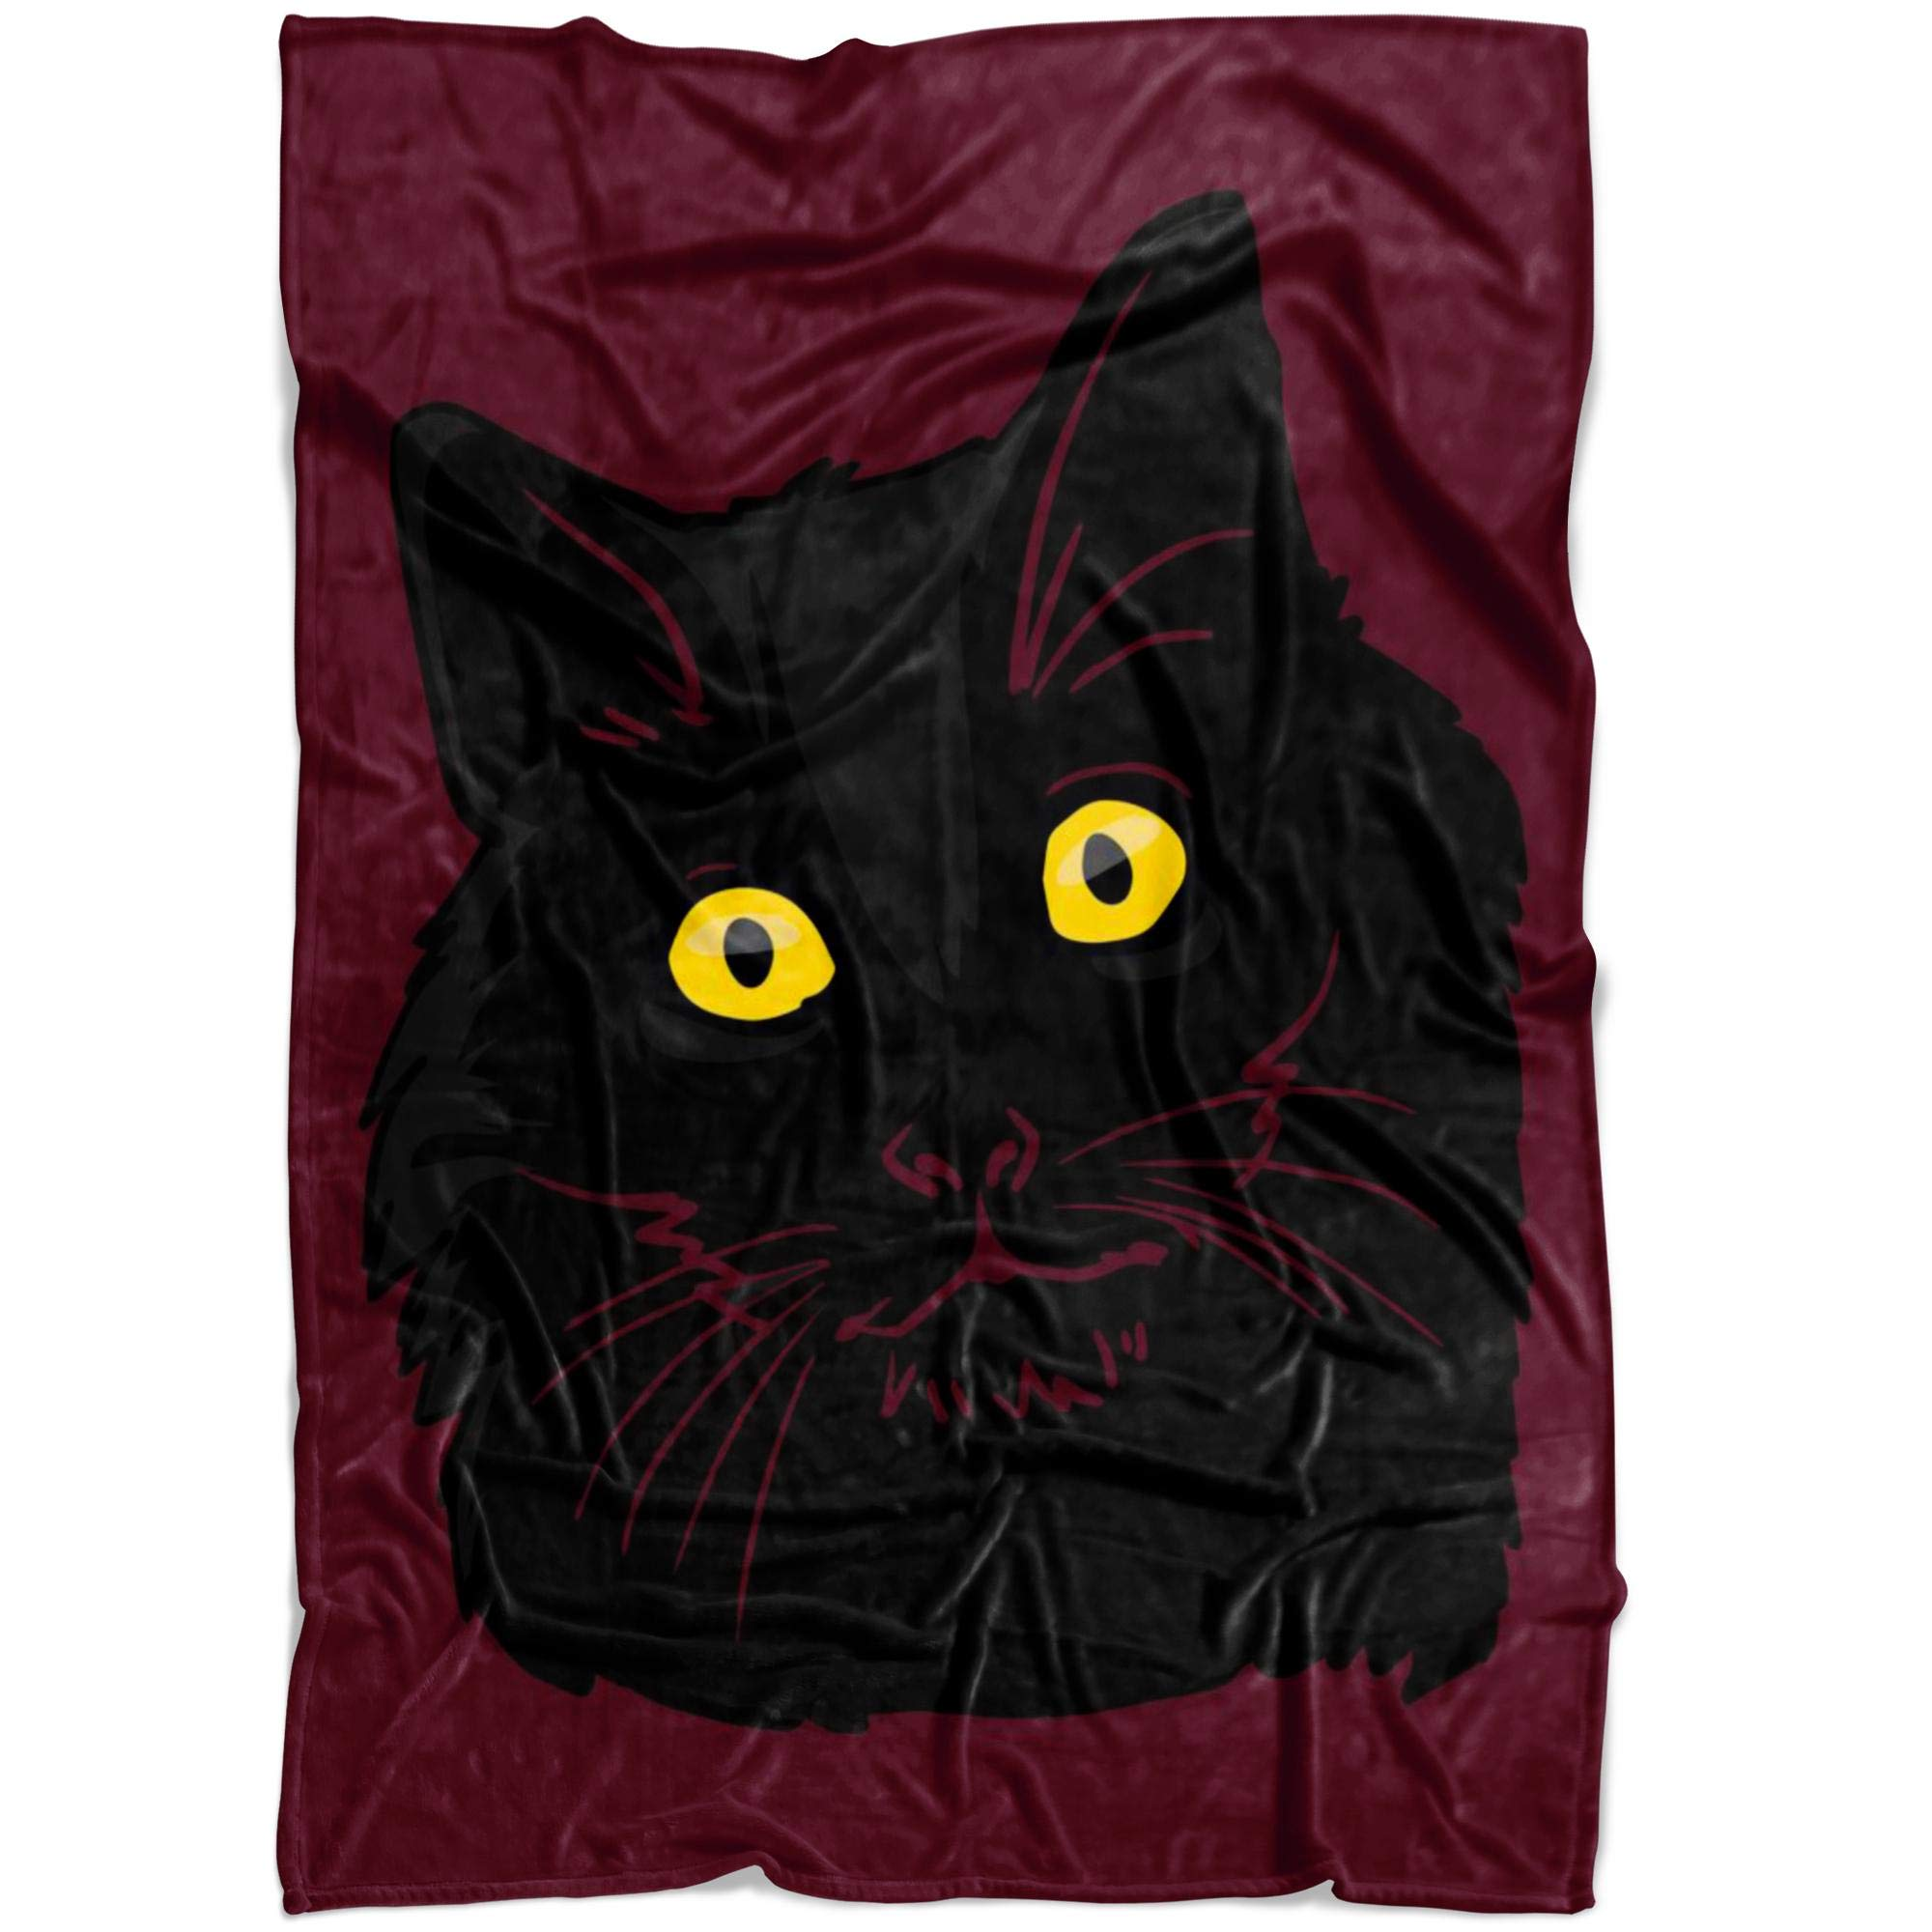 Weezag Bombay Black Cat Fleece Throw Blanket, Cute Kitty Pet Lover Gifts 9189, Large 80''x60'' by Weezag (Image #1)